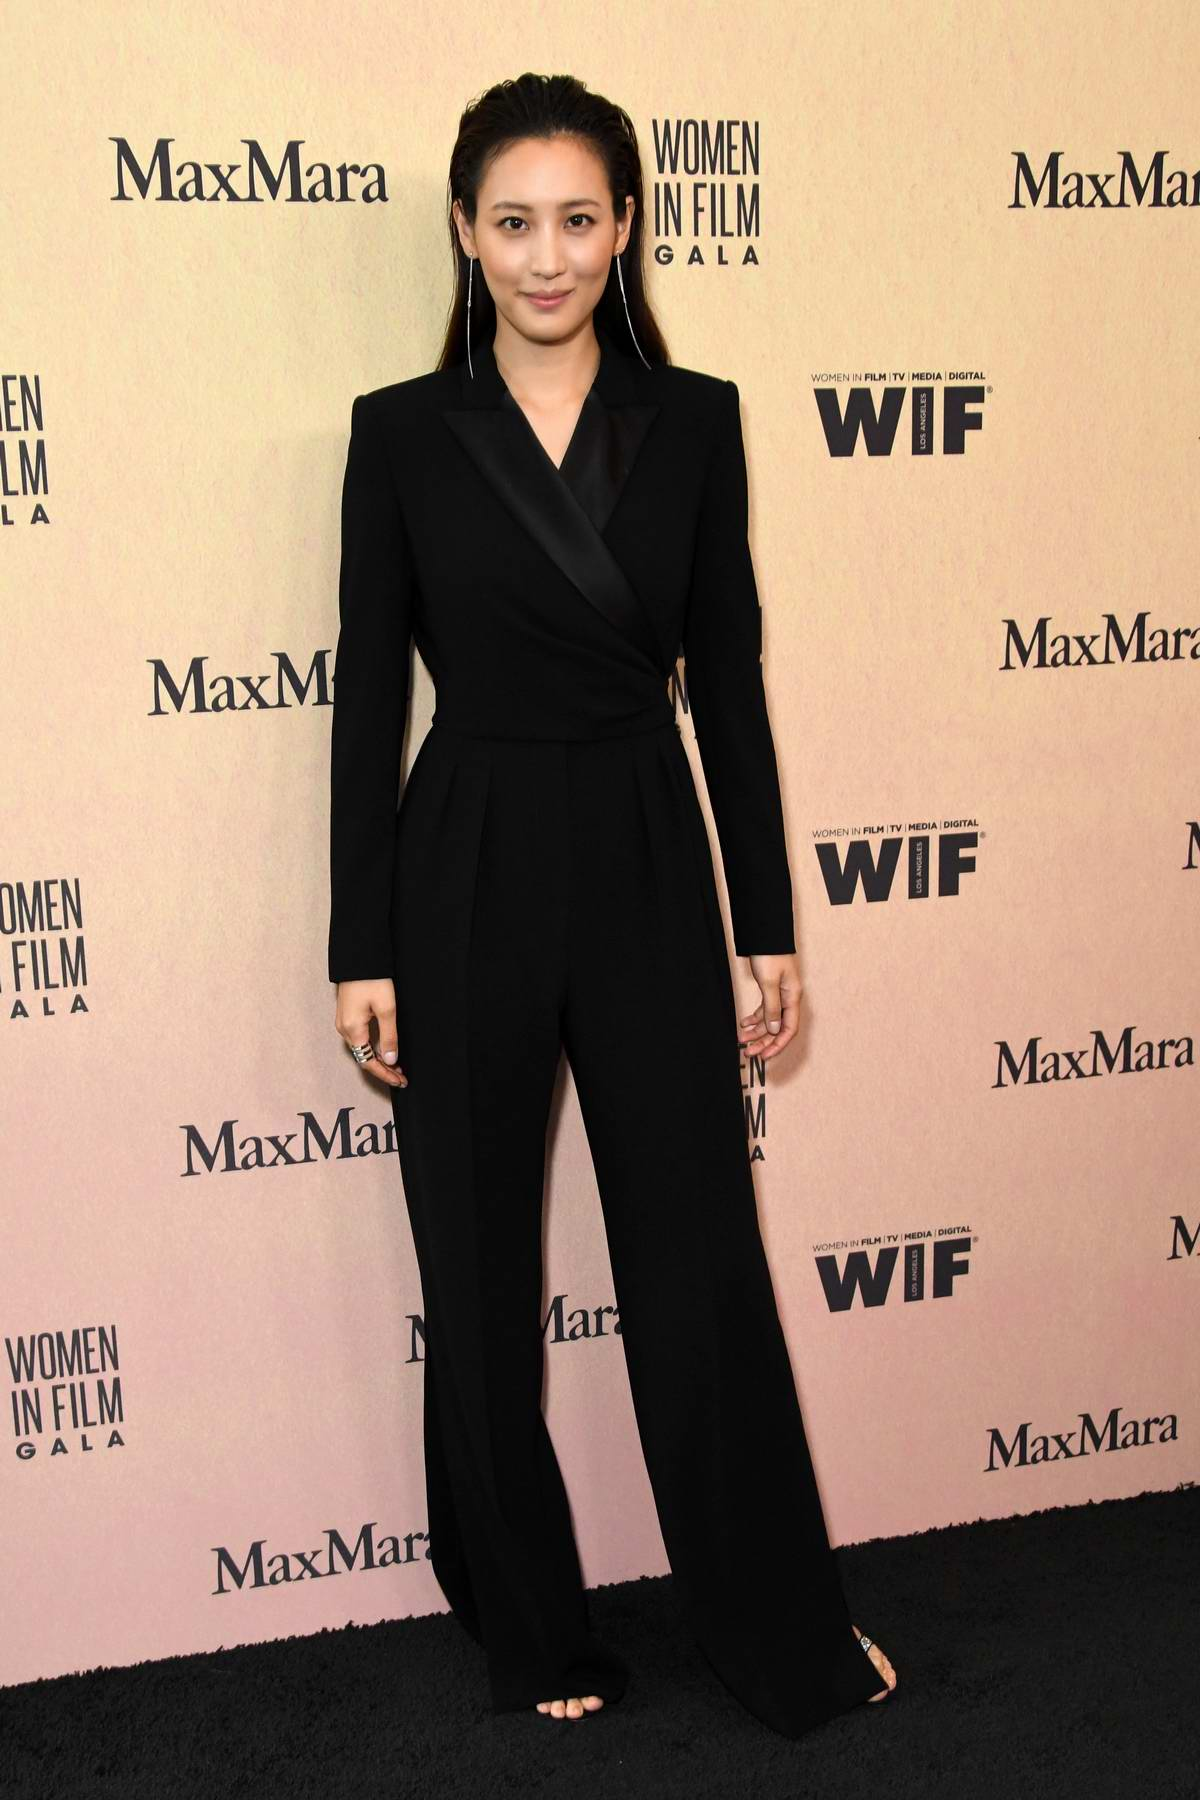 Claudia Kim attends the Women in Film Annual Gala presented by Max Mara at The Beverly Hilton Hotel in Los Angeles